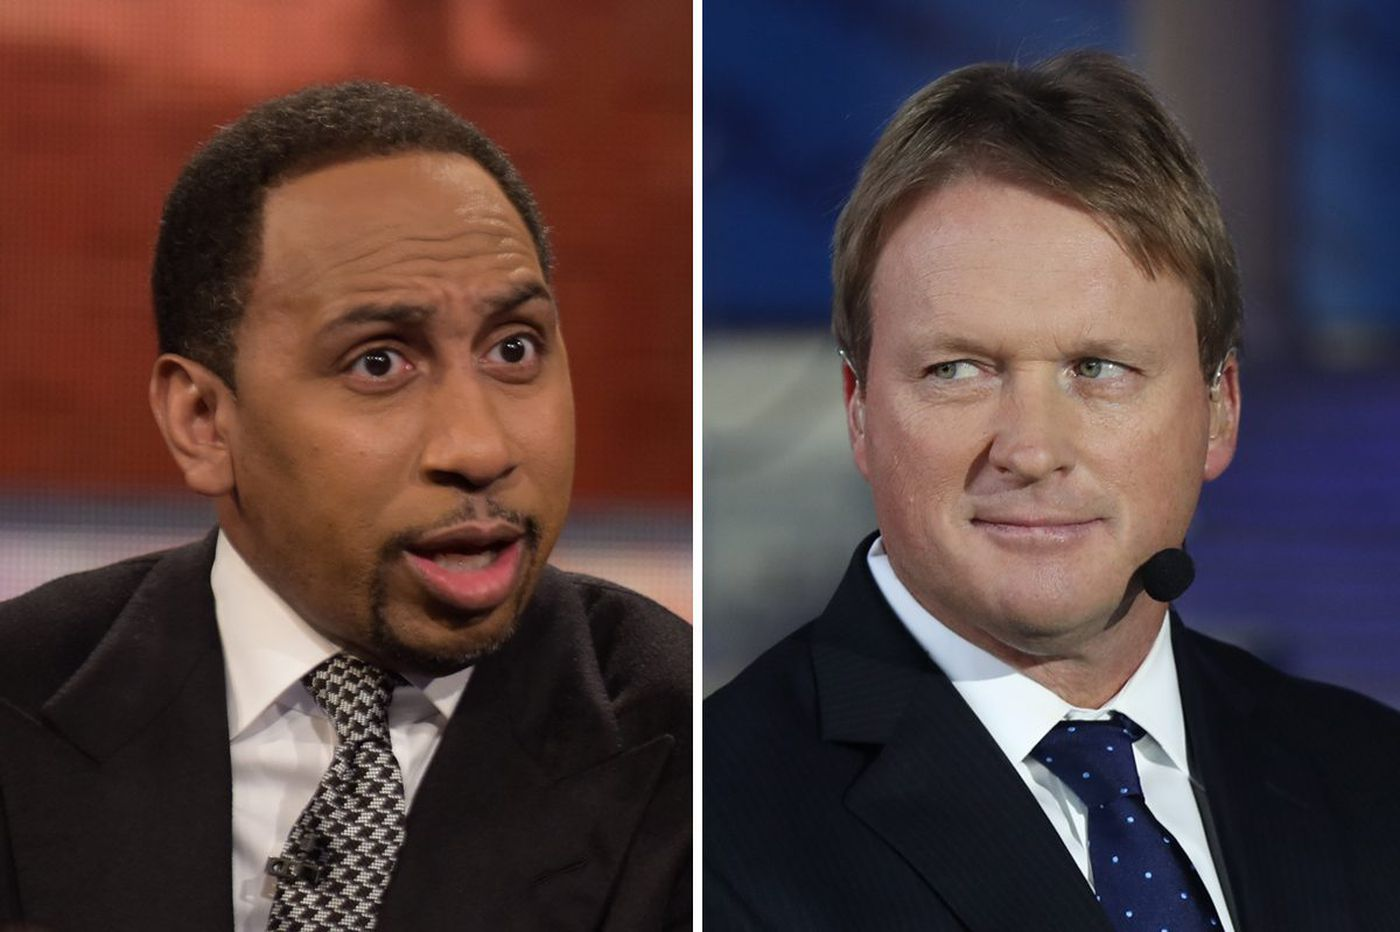 Jon Gruden mocks Stephen A. Smith and ESPN's reporting